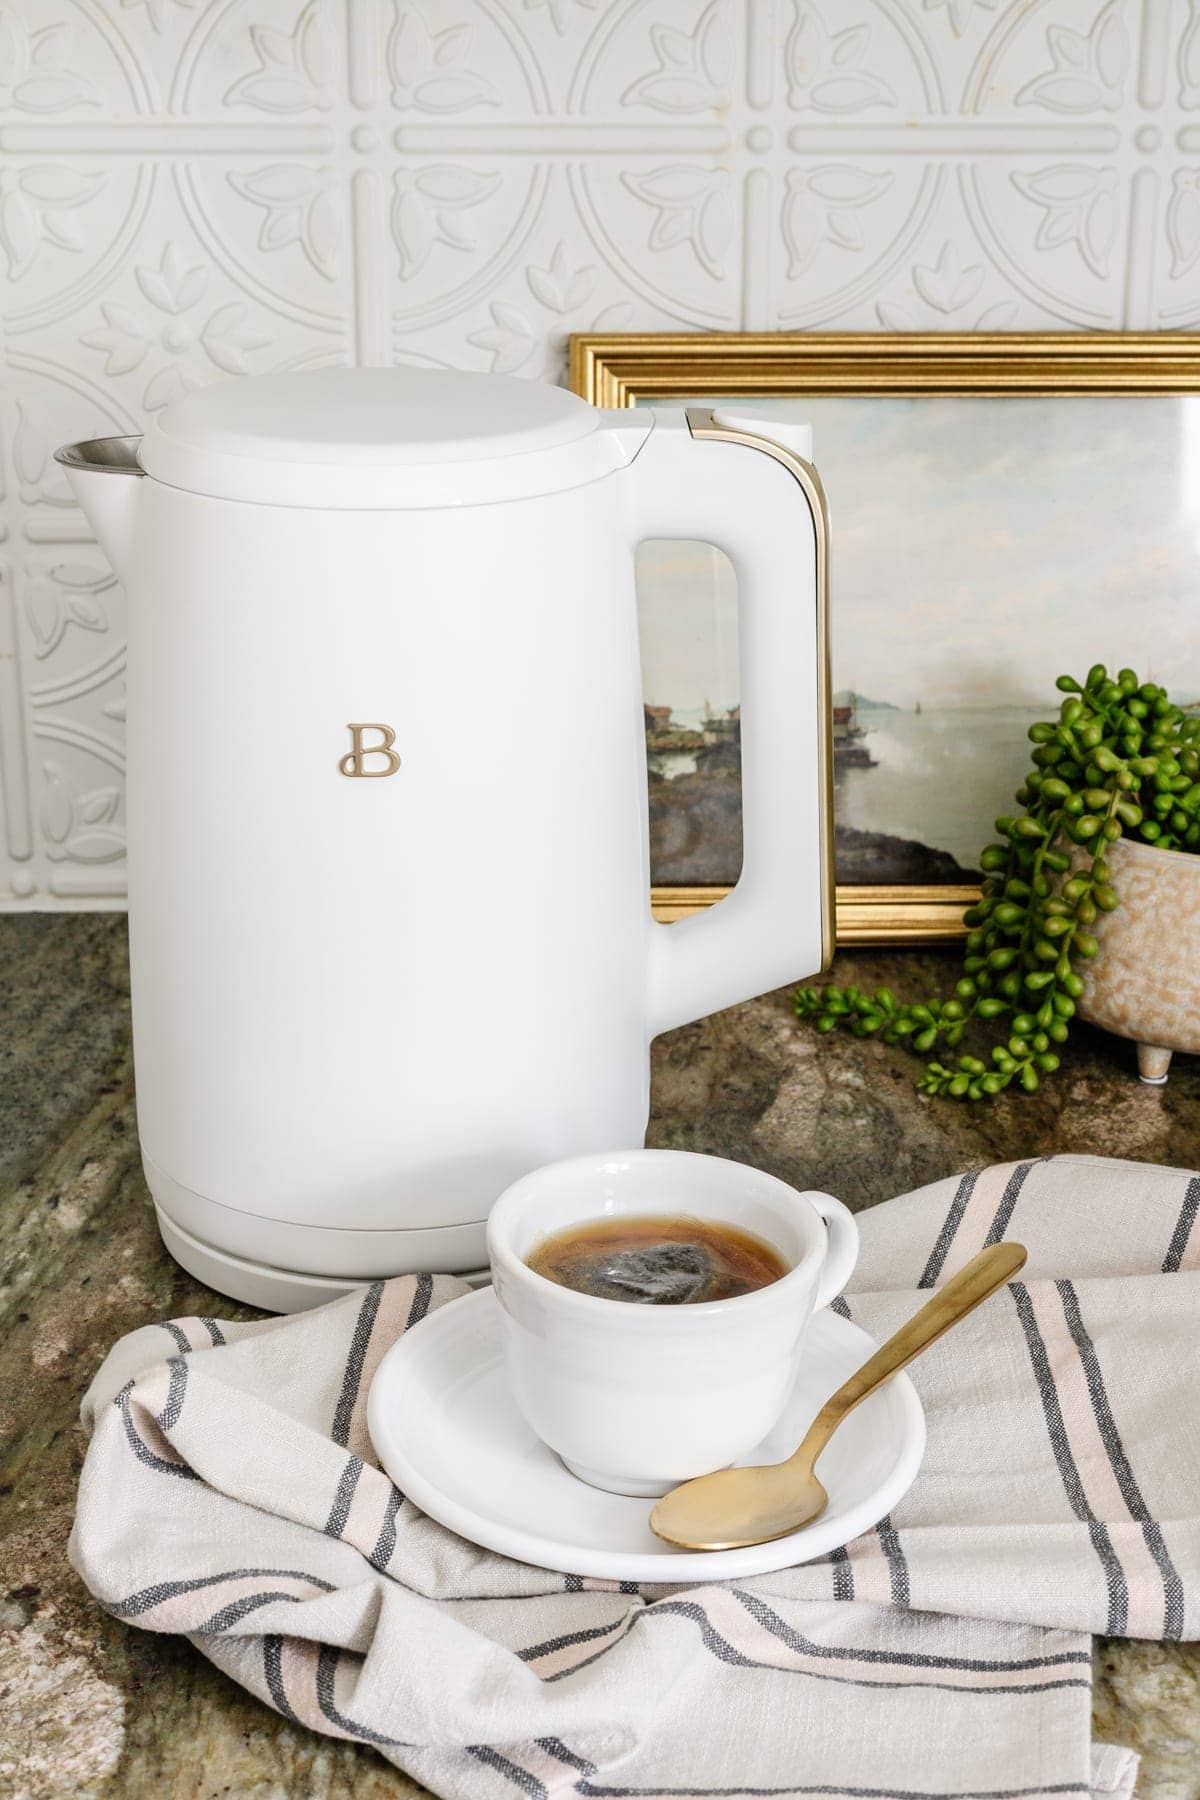 Budget version of the Smeg electric kettle